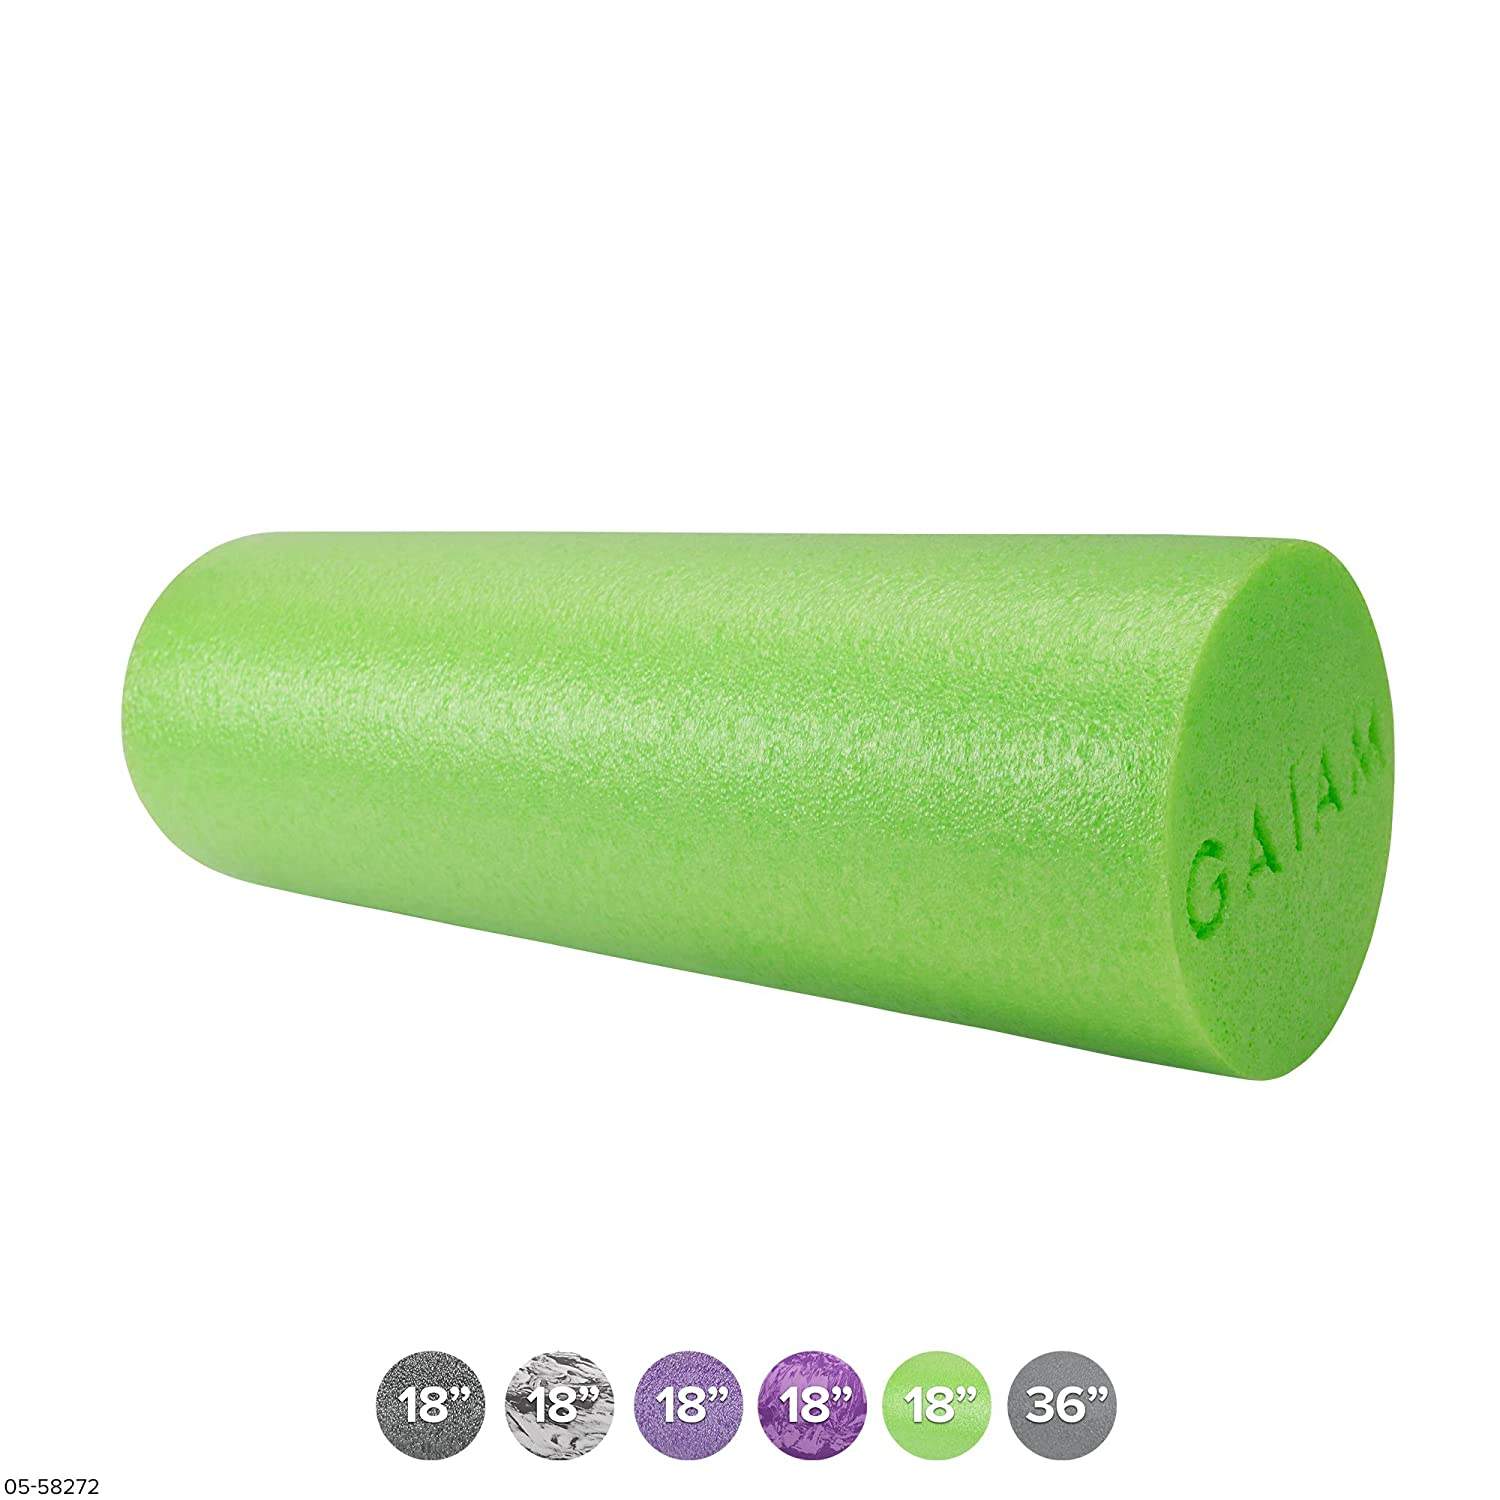 Gaiam Restore Muscle Massage Therapy Foam Rollers (18 inch & 36 inch)